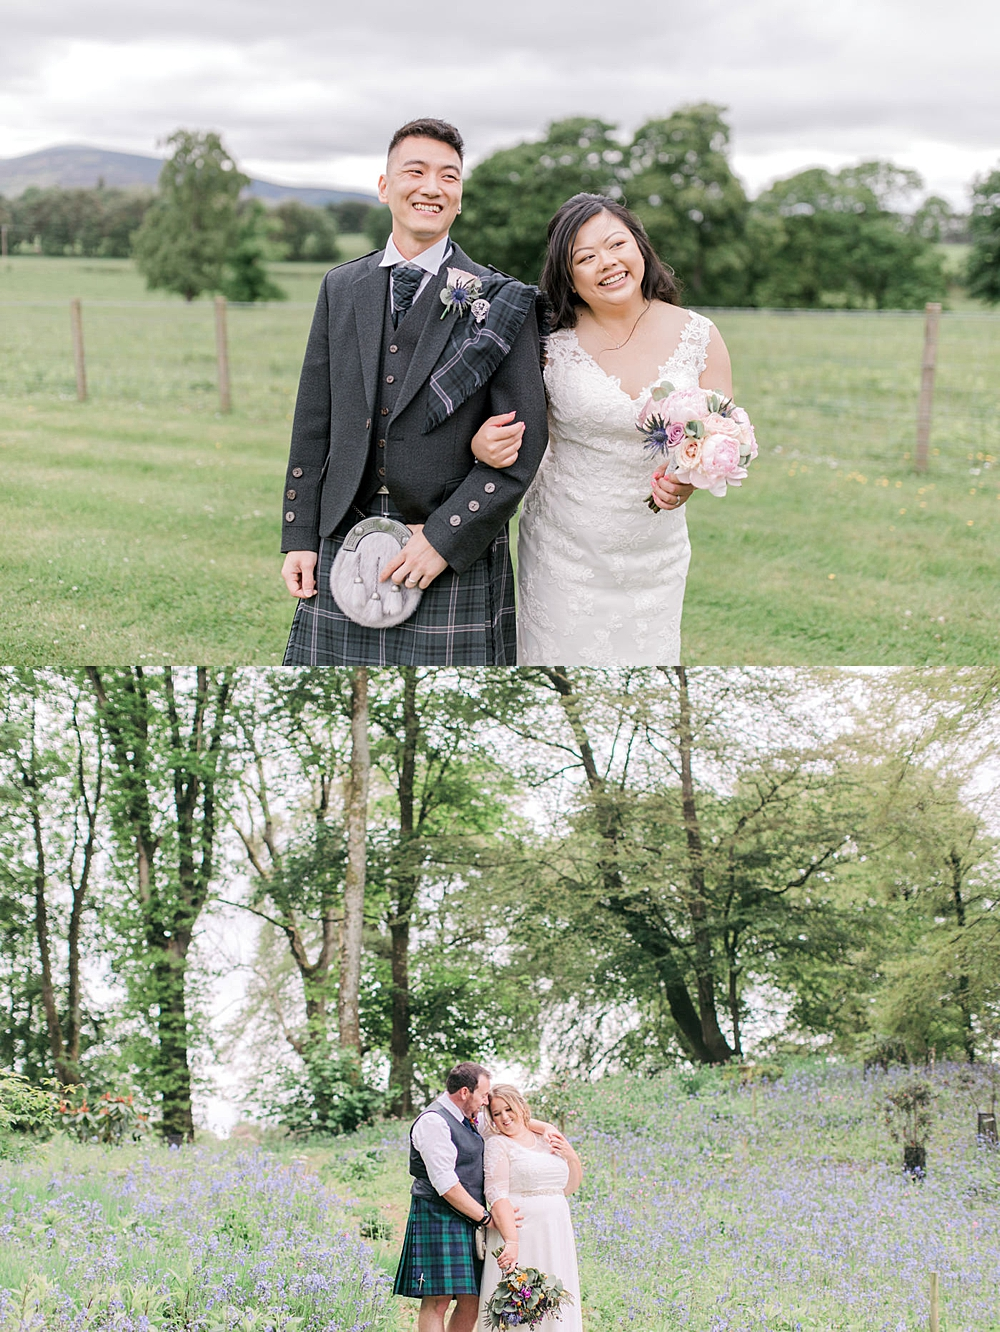 Fine Art Wedding Photographers,The Gibsons,elegant wedding photographers glasgow,light and airy wedding photographers glasgow,natural wedding photographers,romantic photographers Scotland,two wedding photographers scotland,